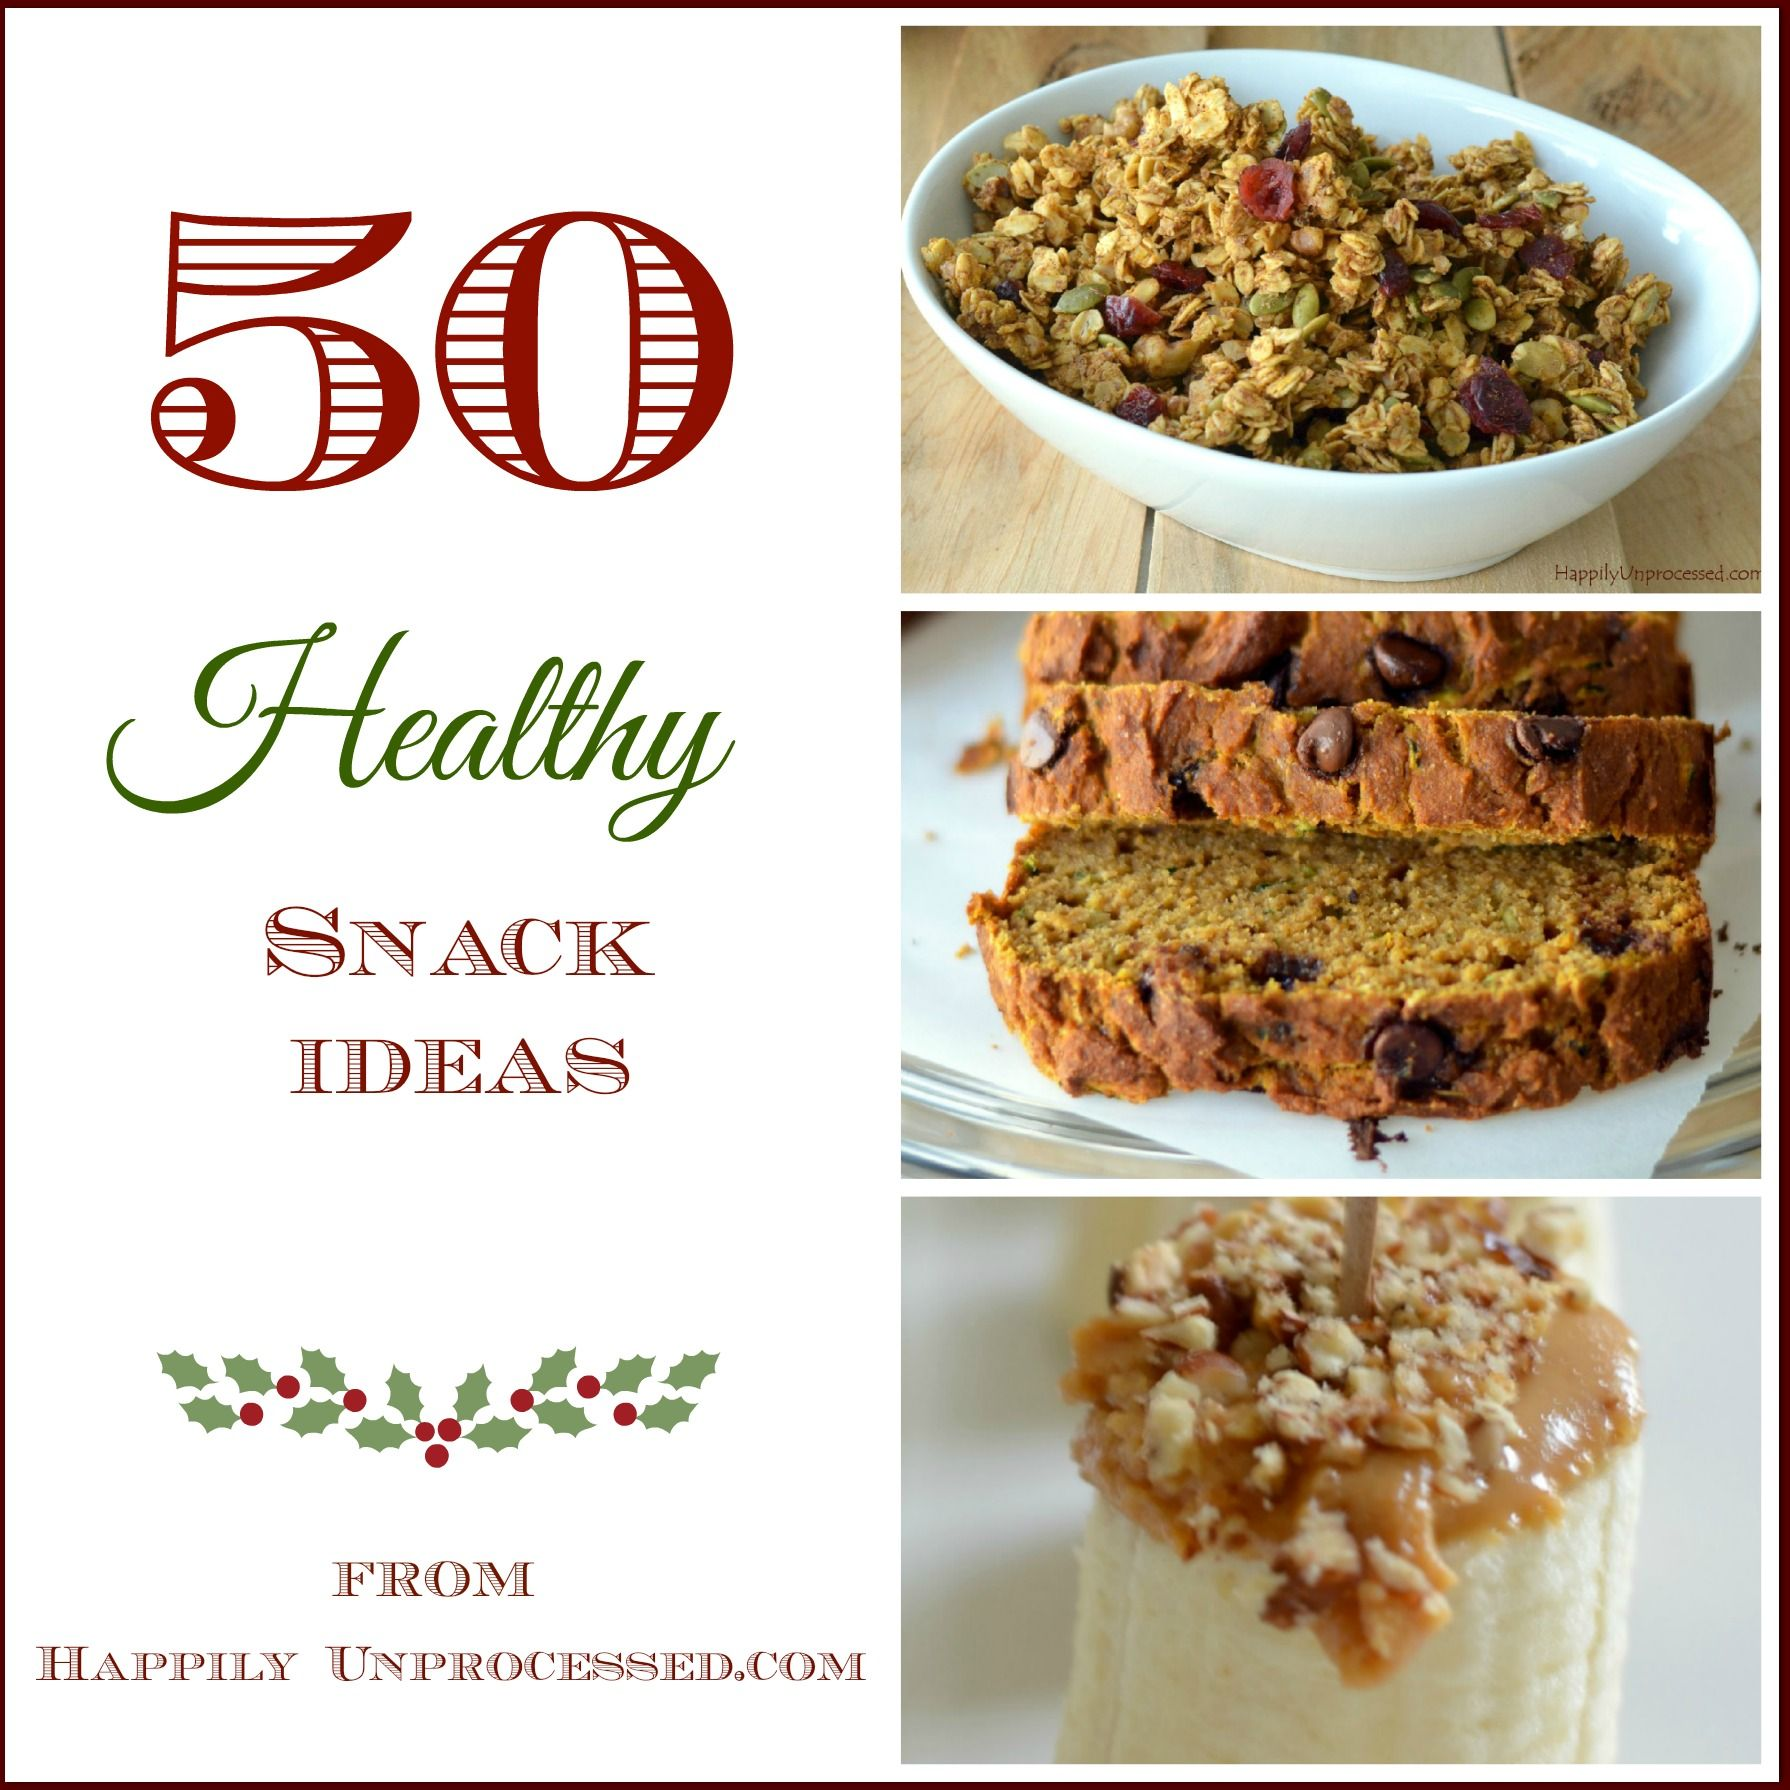 Snacks are a great way to get extra protein, fiber and vitamins in your diet and these ideas will help get you started!